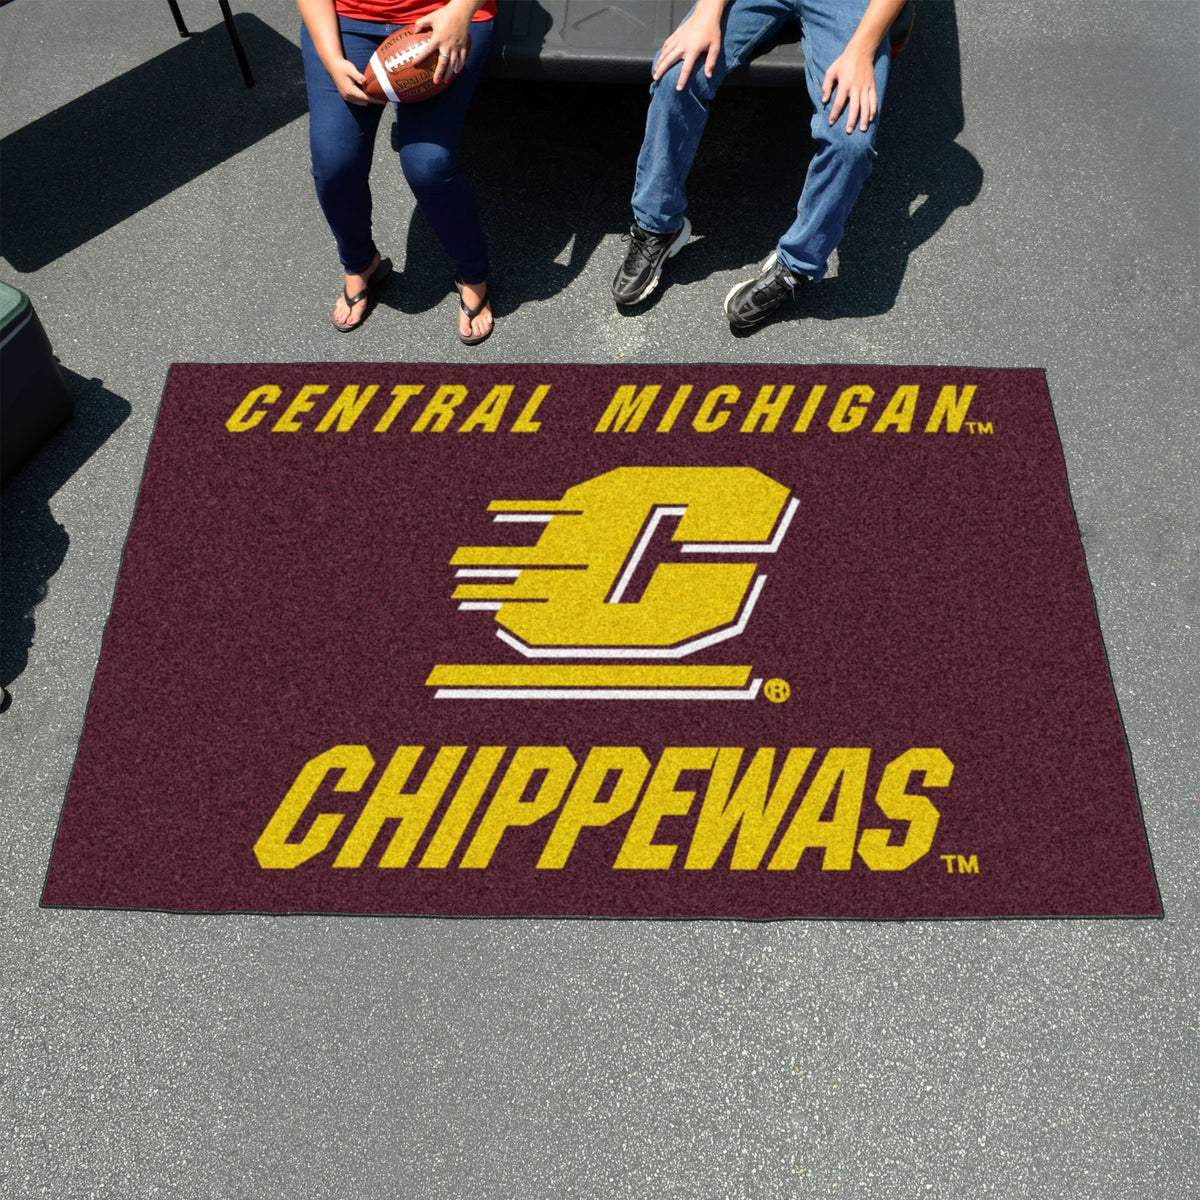 Collegiate - Ulti-Mat: A - L Collegiate Mats, Rectangular Mats, Ulti-Mat, Collegiate, Home Fan Mats Central Michigan